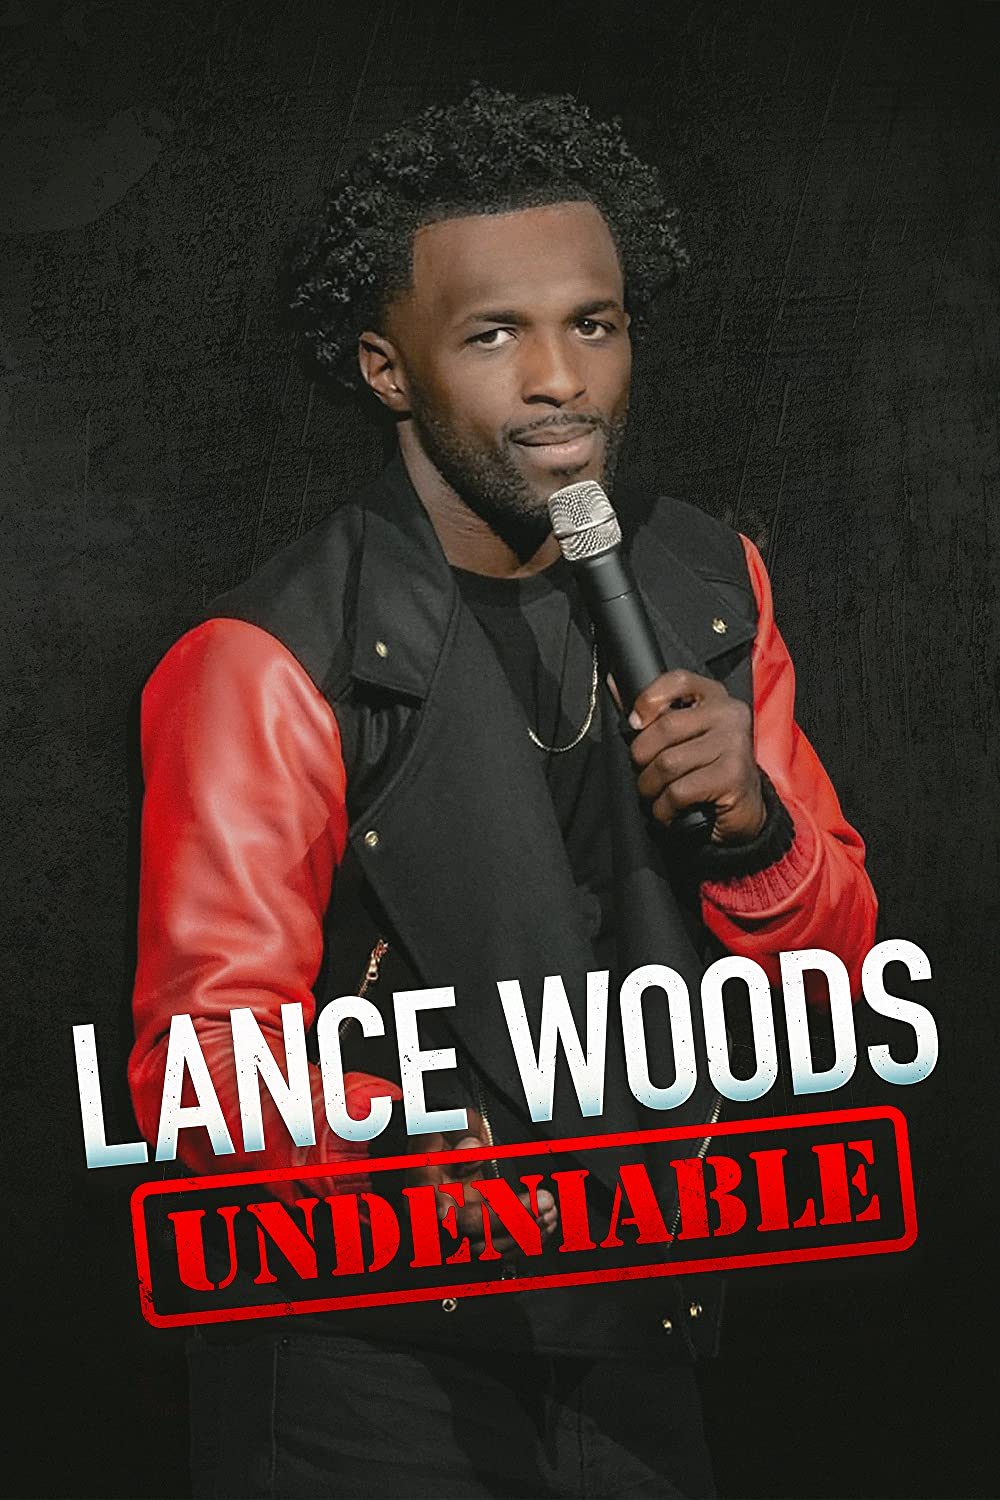 Lance Woods: Undeniable| Watch Movies Online